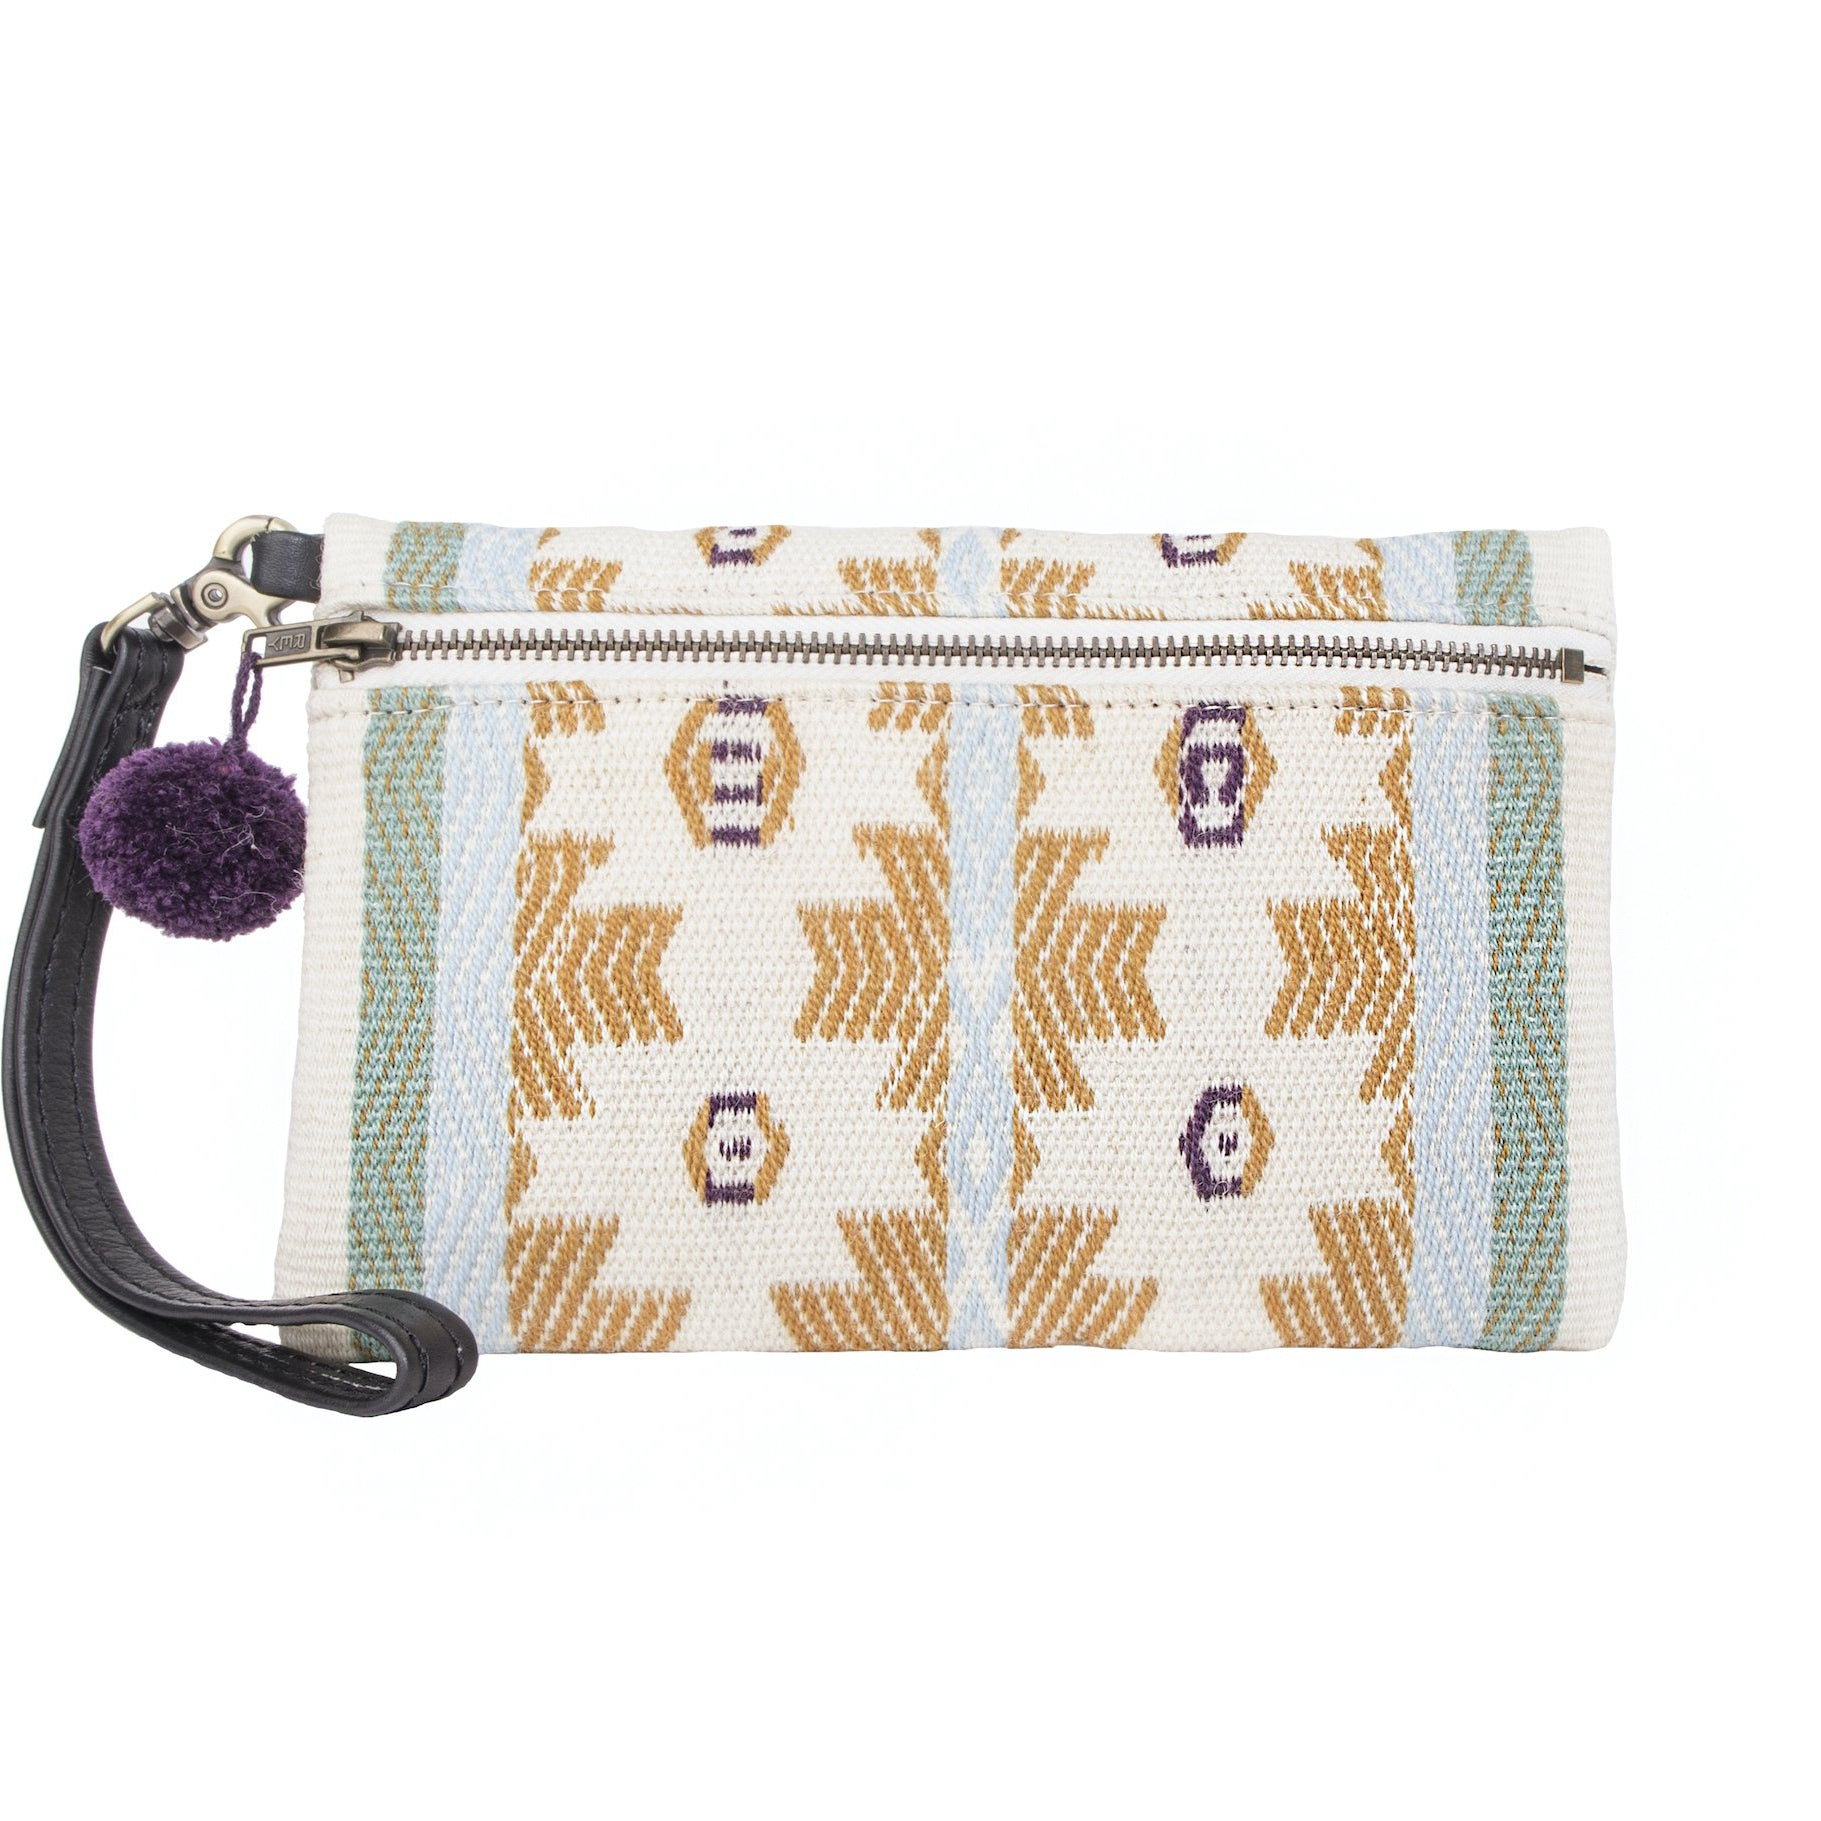 Awamaki - Inti Wristlet in Honey